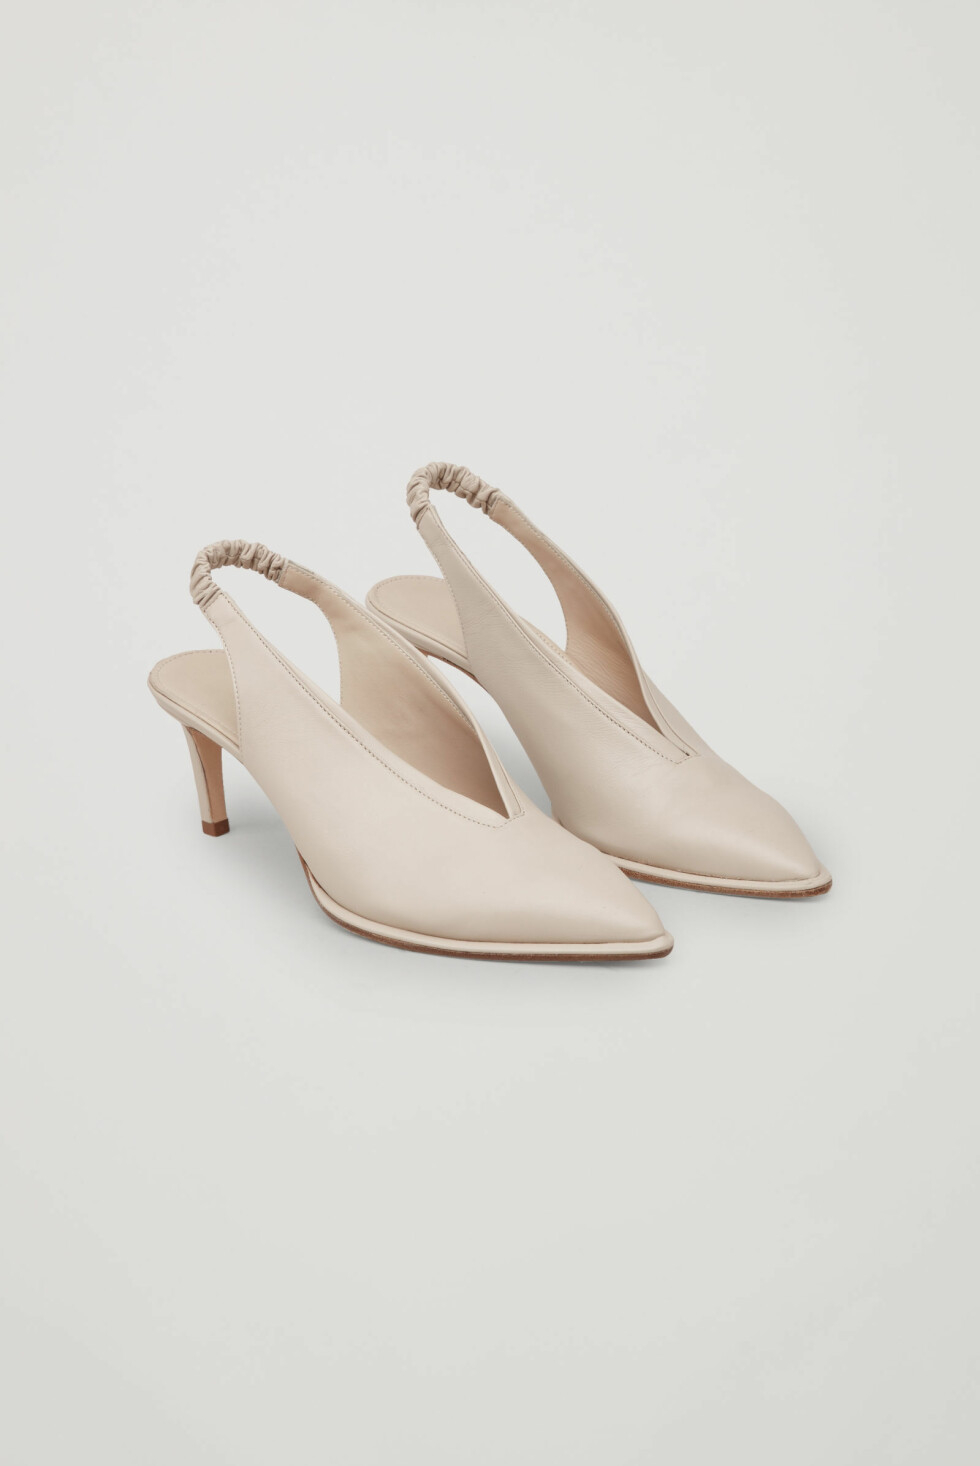 Sko fra COS |550,-| https://www.cosstores.com/en_sek/women/accessories/shoes/product.slingback-leather-heels-beige.0669340001.html